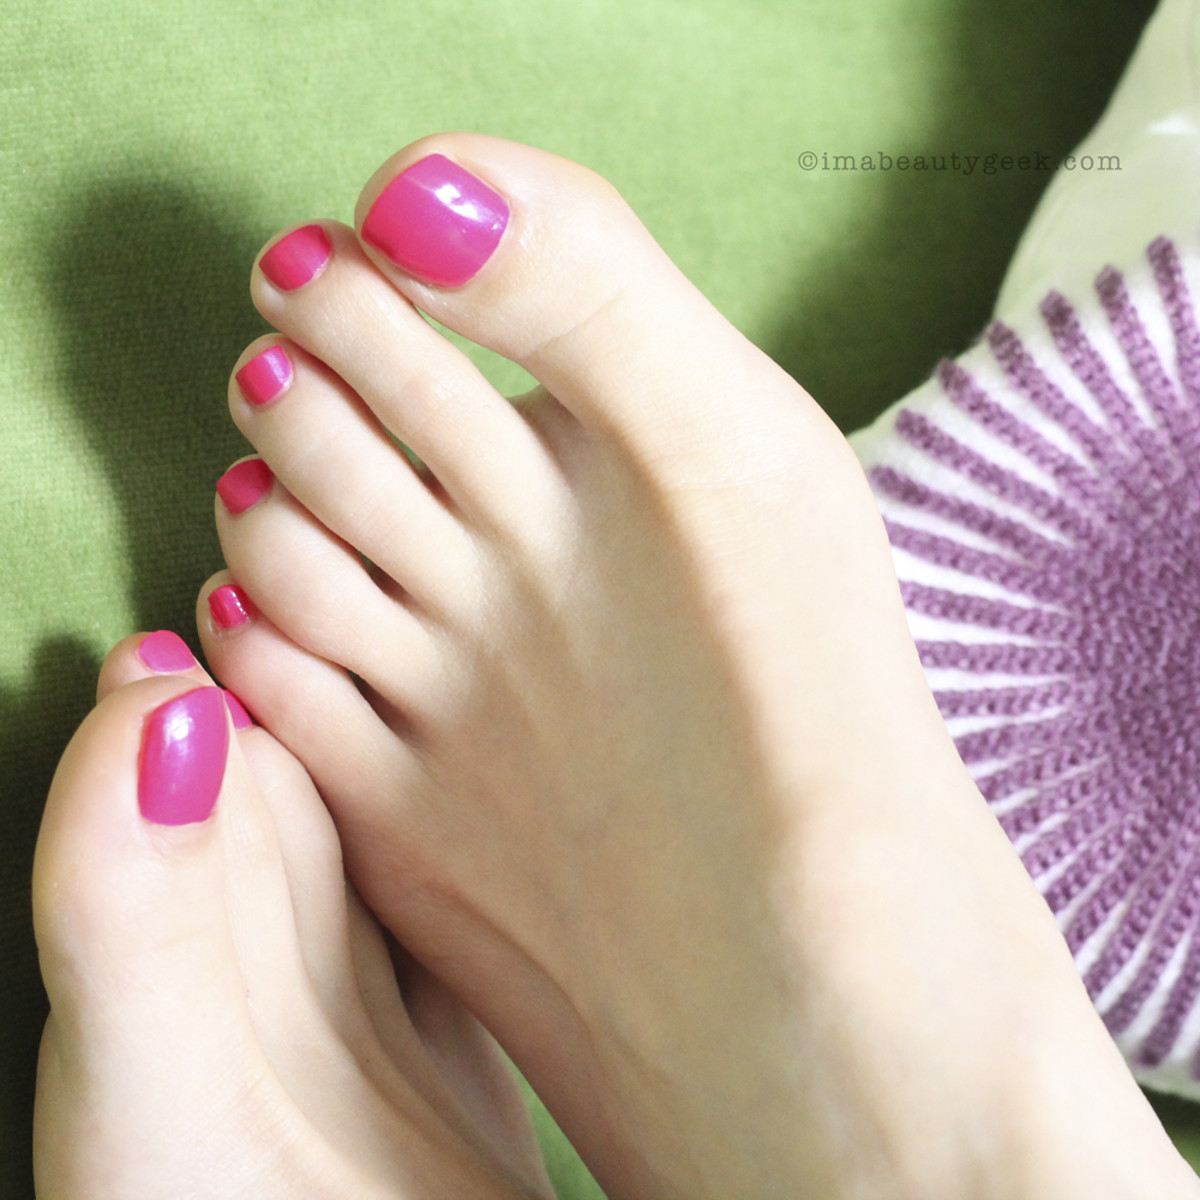 Pedicure with Sally Hansen Complete Salon Manicure in Back to the Fuchsia